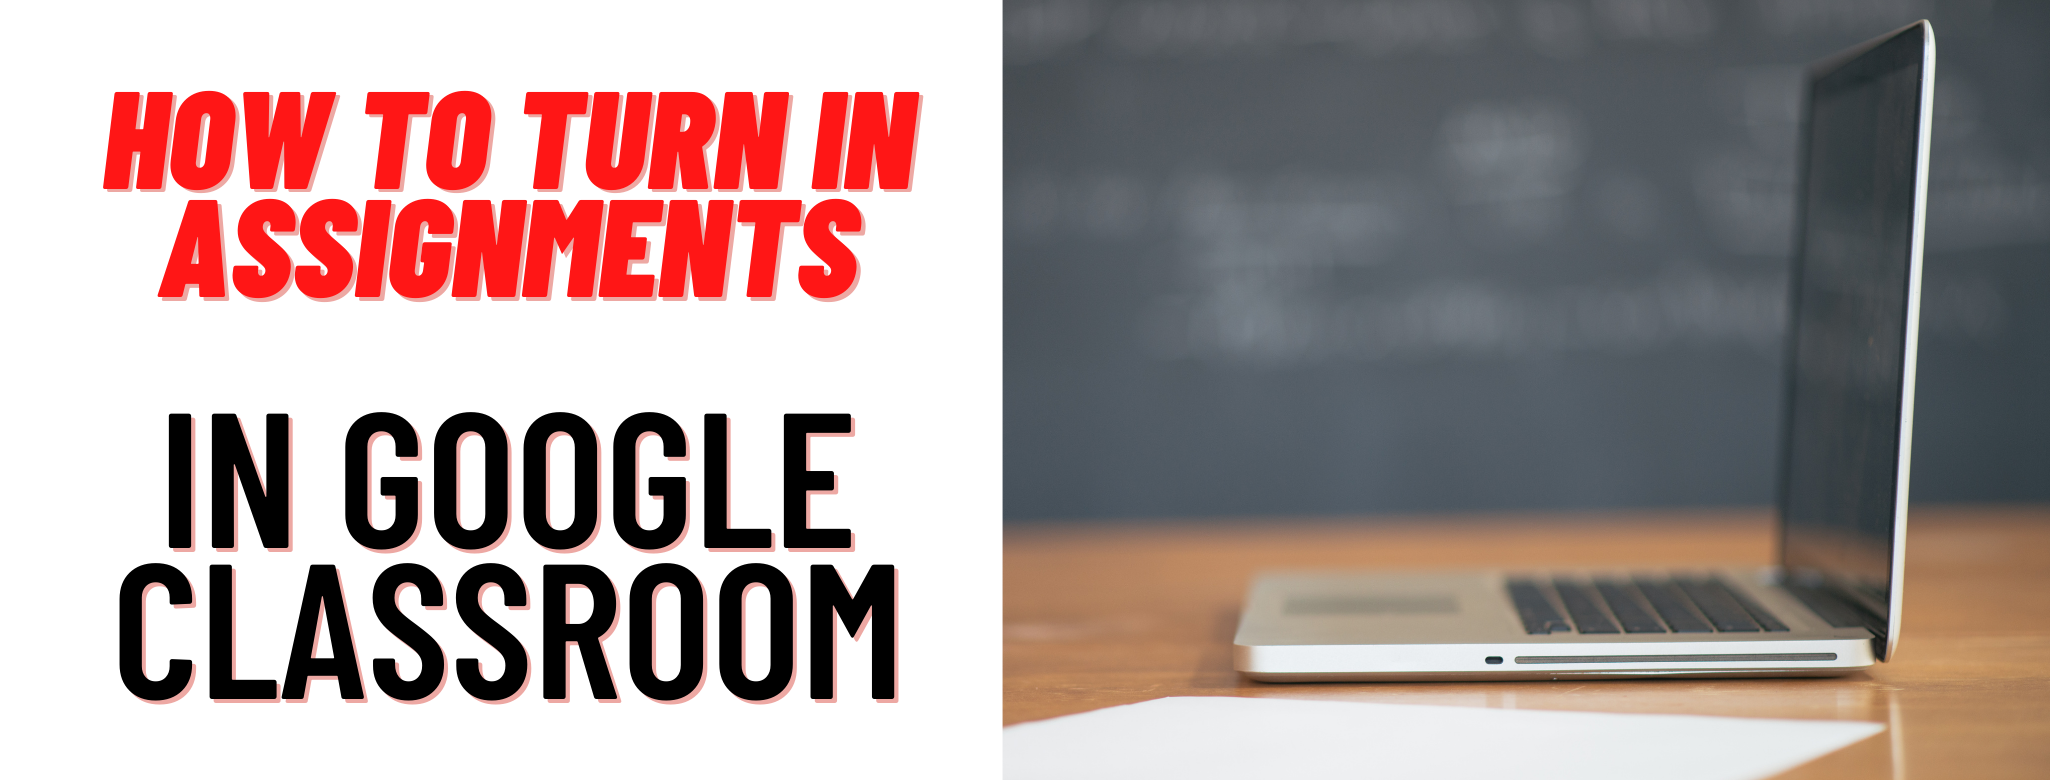 How to turn in assignments in Google Classroom